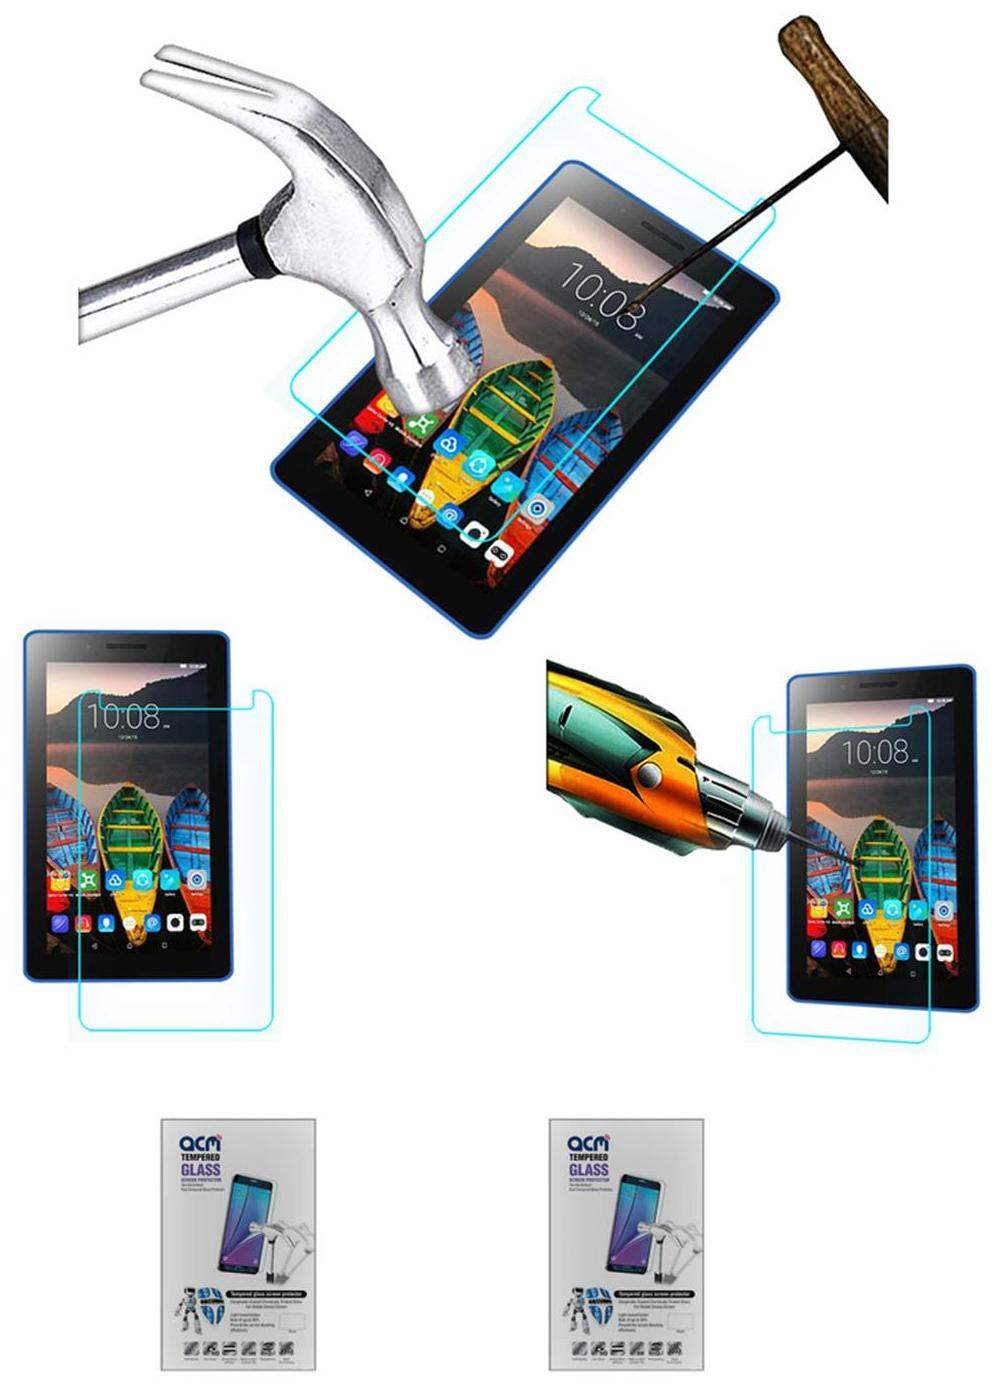 Acm Pack of 2 Tempered Glass Screenguard for Lenovo Tab3 8 Screen Guard Scratch Protector